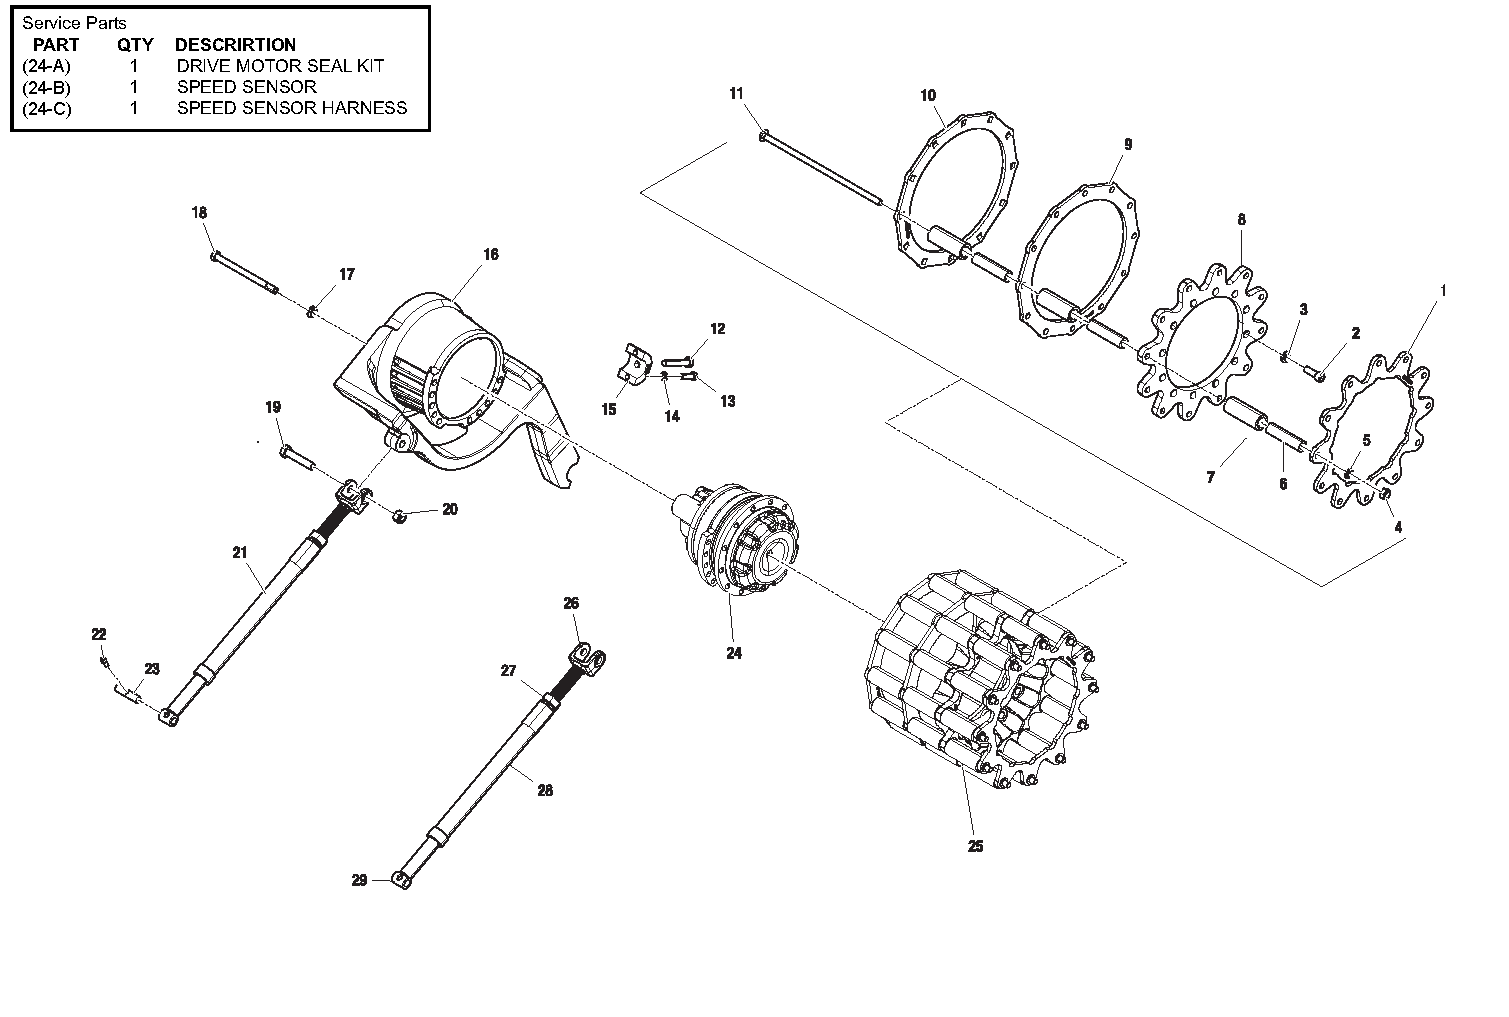 Diagram 5-5A Drive Table Assembly - Left Side